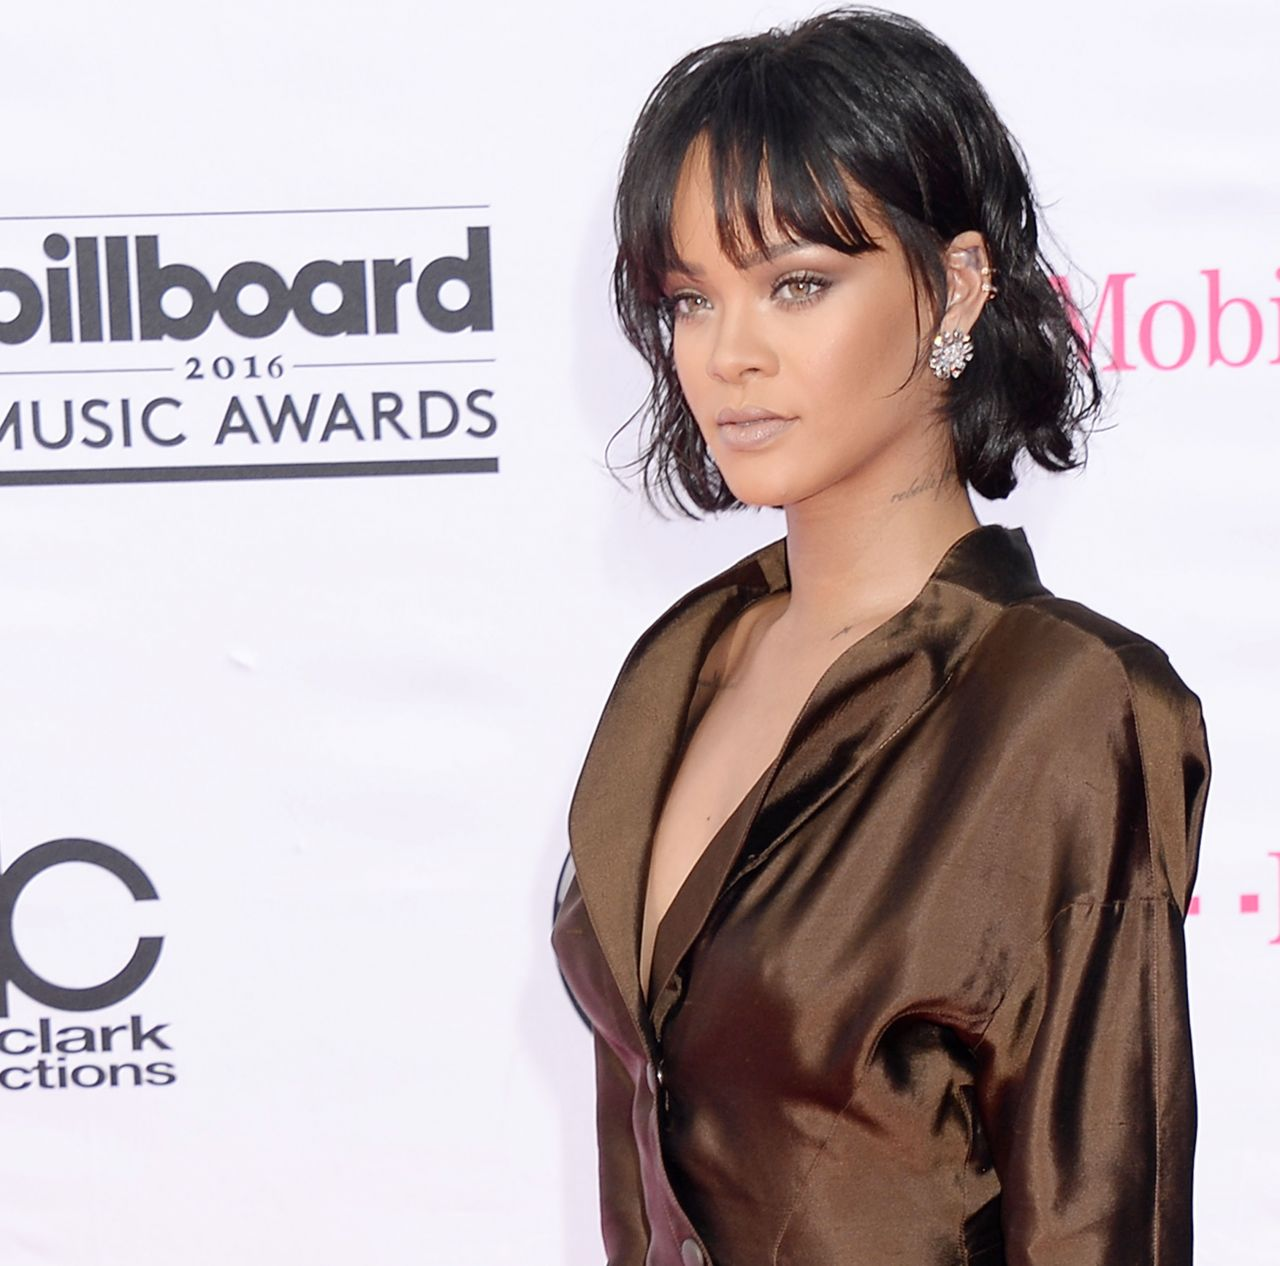 Rihanna wears a silk shirt dress to the Billboard Music Awards 2016